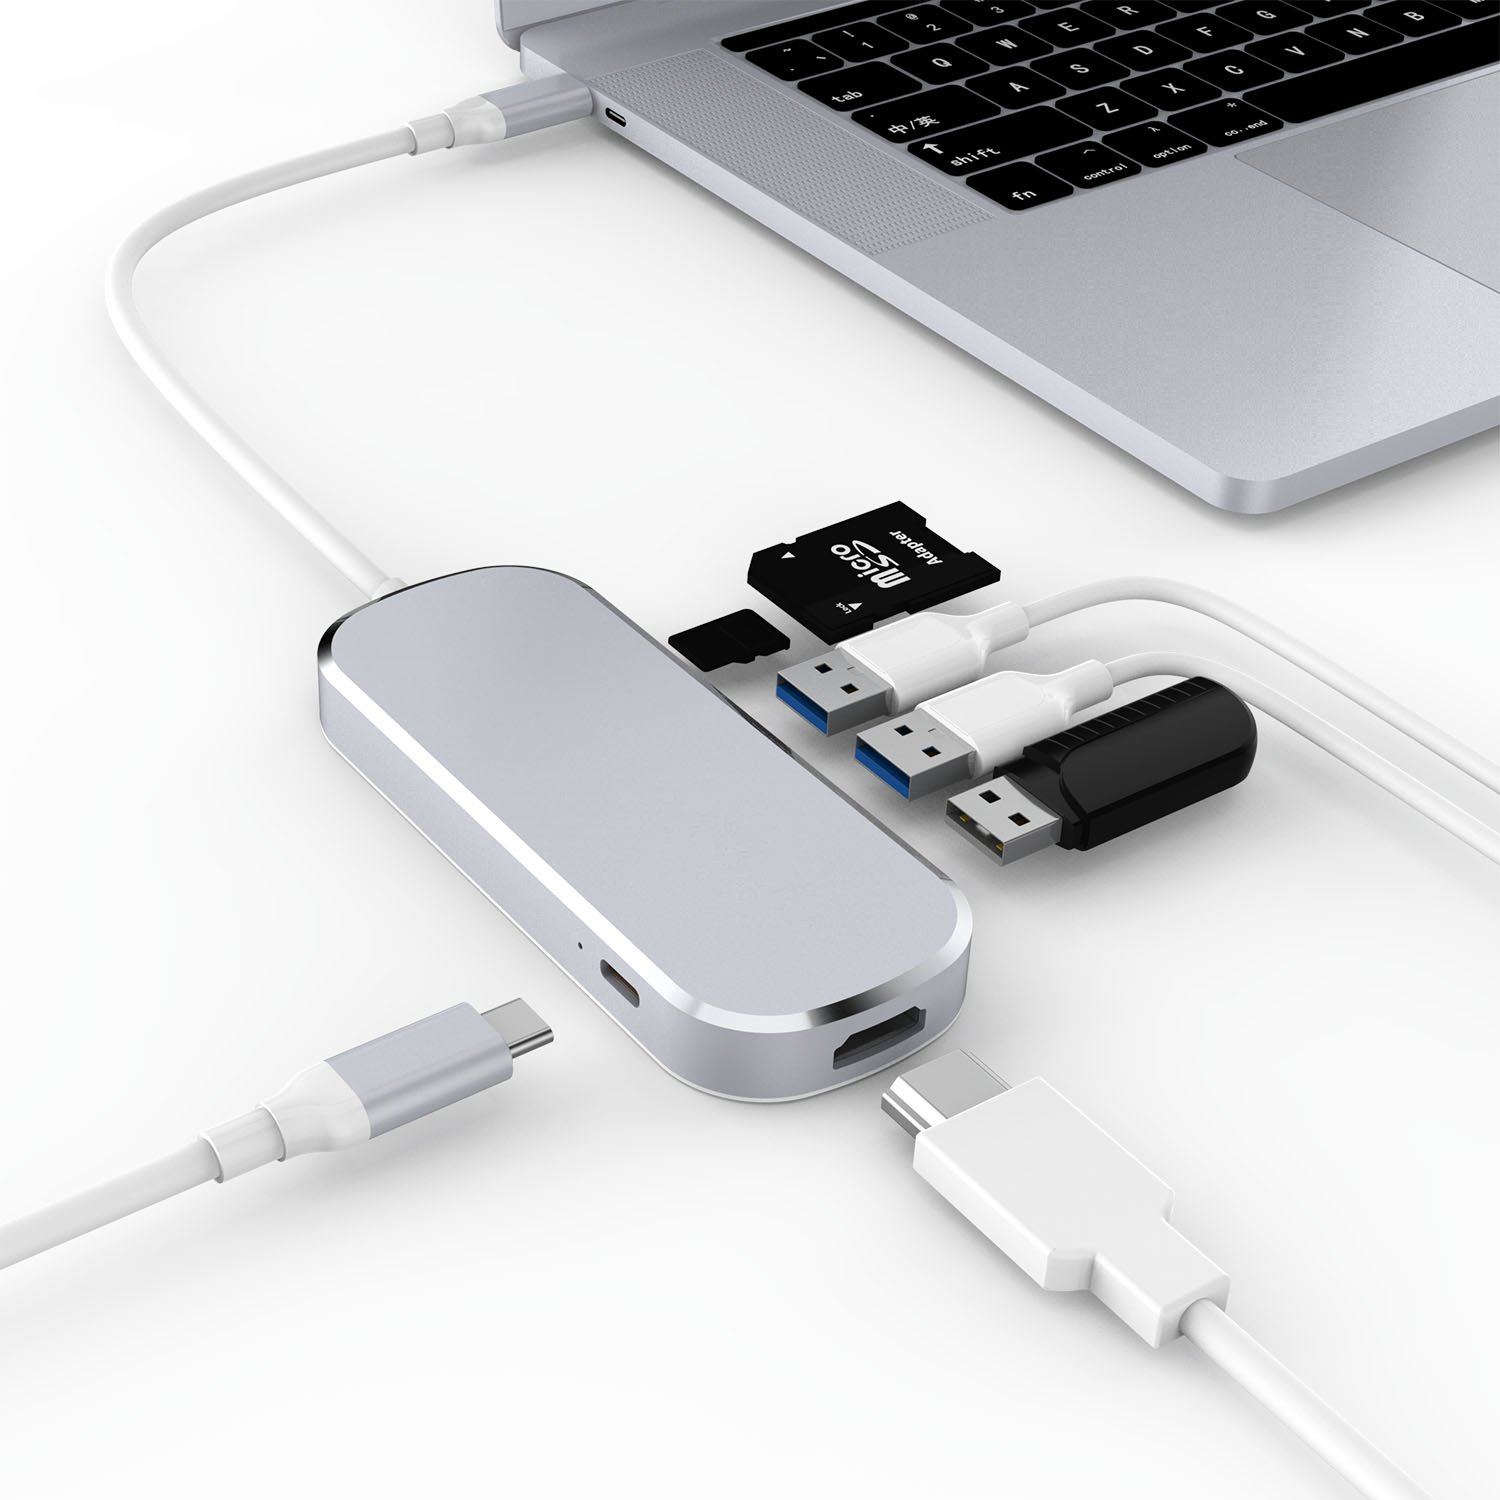 USB C Hub, 6-in-1 Multi Port Adapter with Type C Charging Port, HDMI Port, SD/TF Card Reader, 3 USB 3.0 Ports Aluminum Design for MacBook,SAMSUNG,Chromebook And More Type C Device by Coling